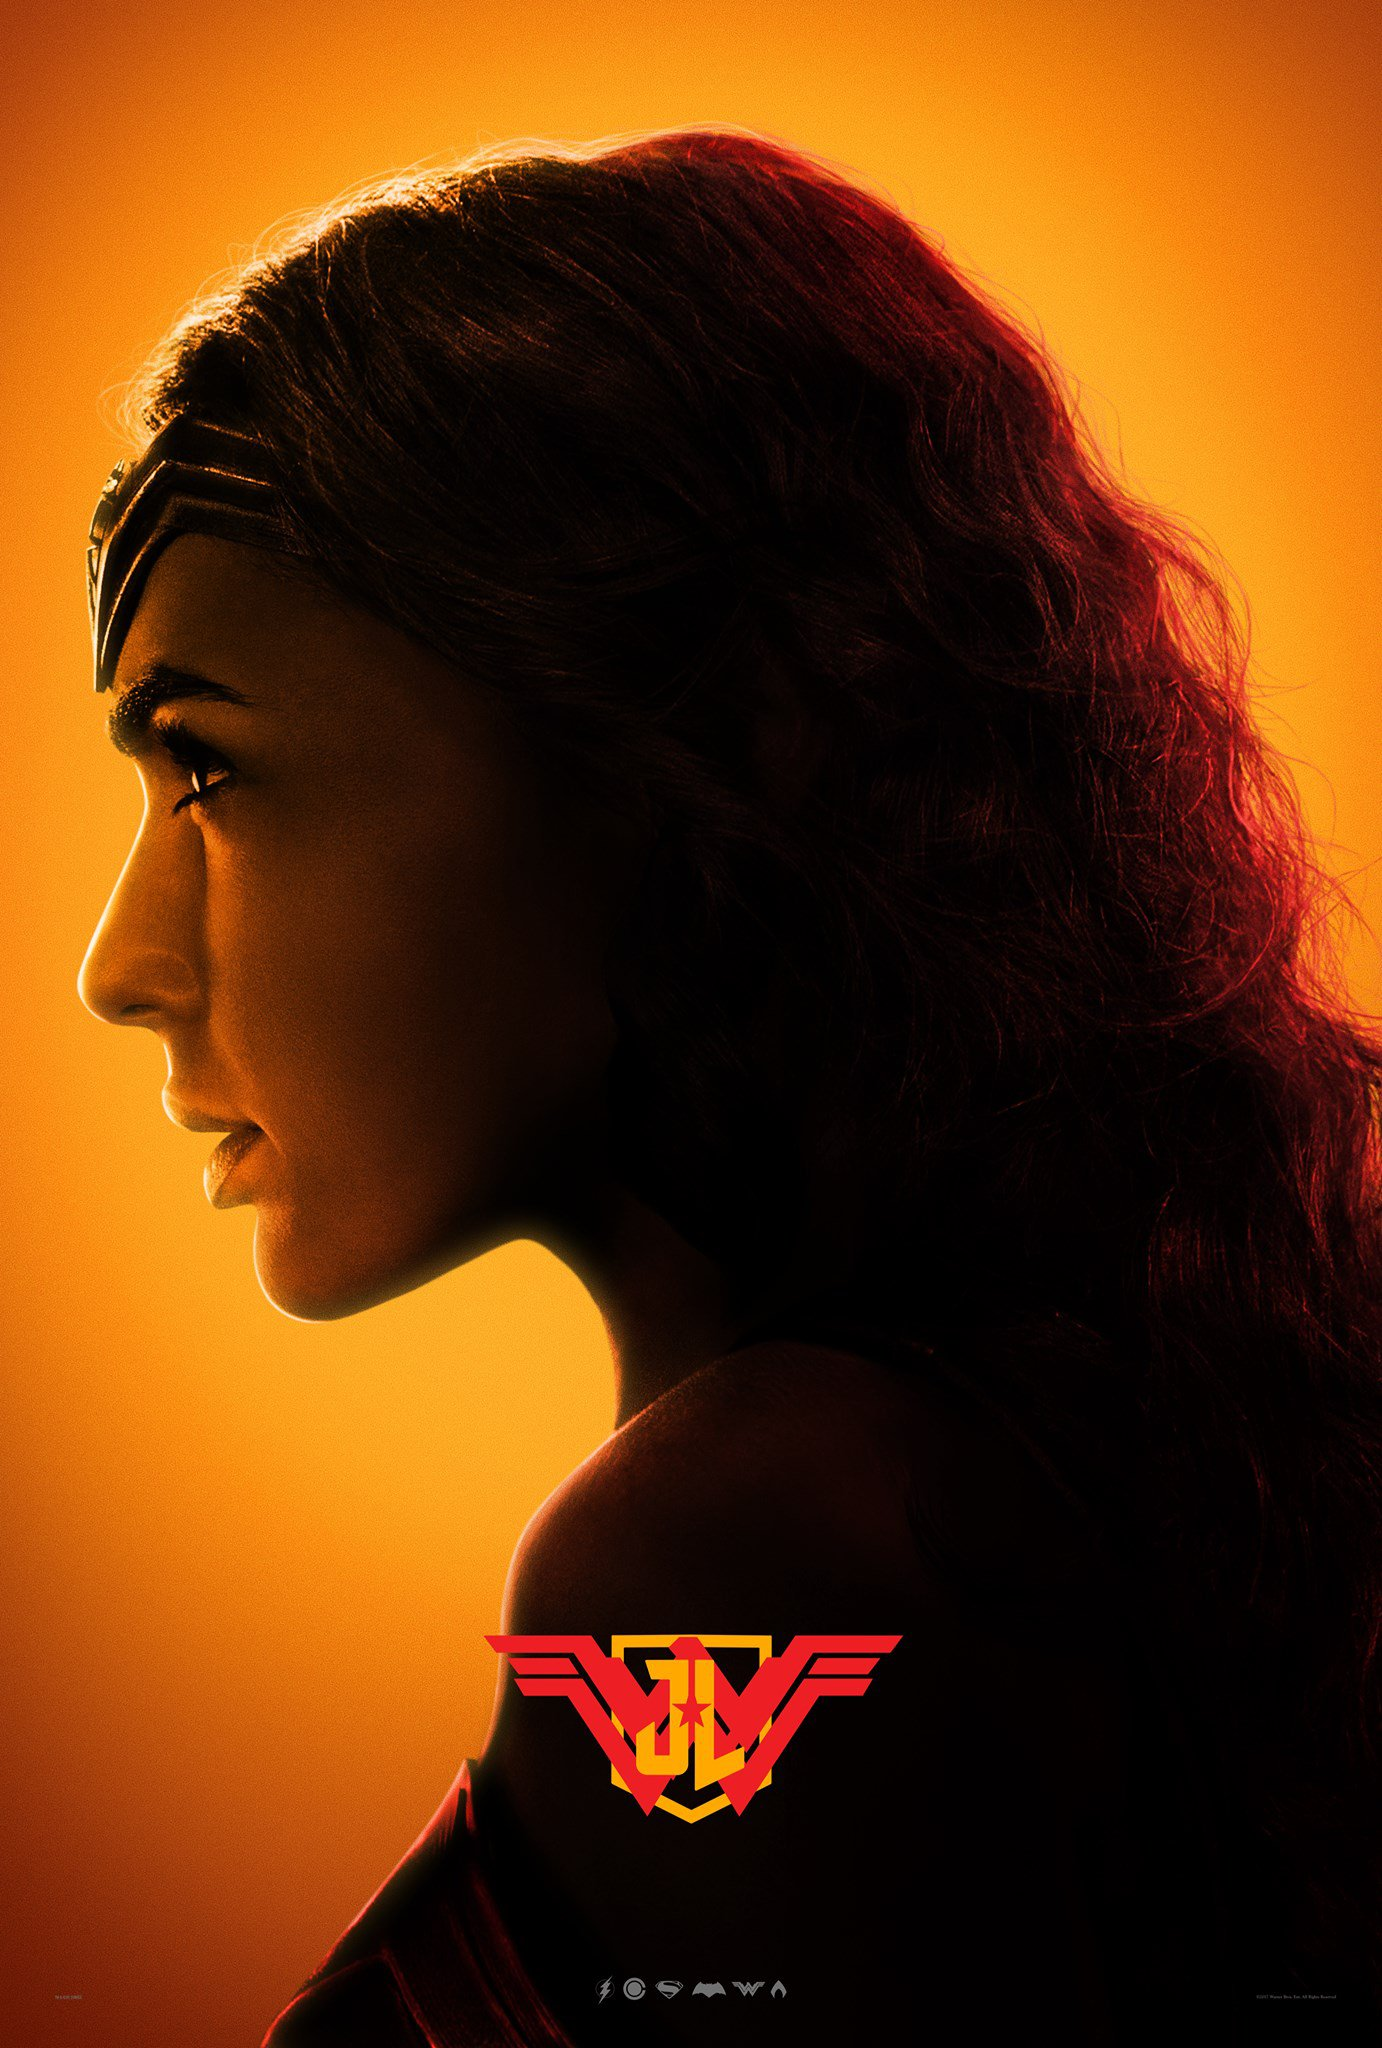 Justice League poster for Wonder Woman